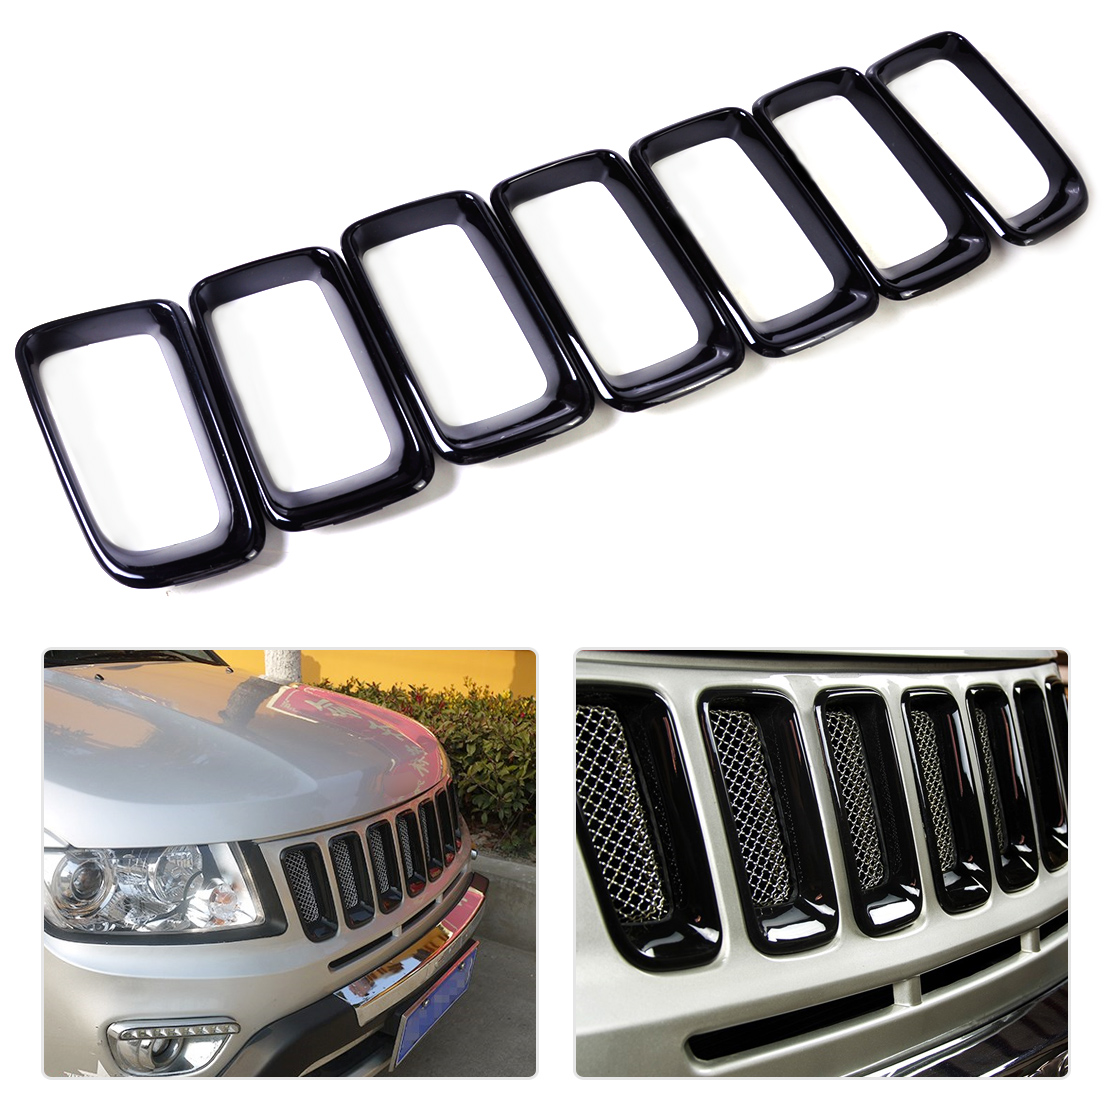 beler 7pcs Black Front Grille Vent Hole Insert Frame Cover Trim Billet Vertical for Jeep Compass 2011 2012 2013 2014 2015 2016 цена